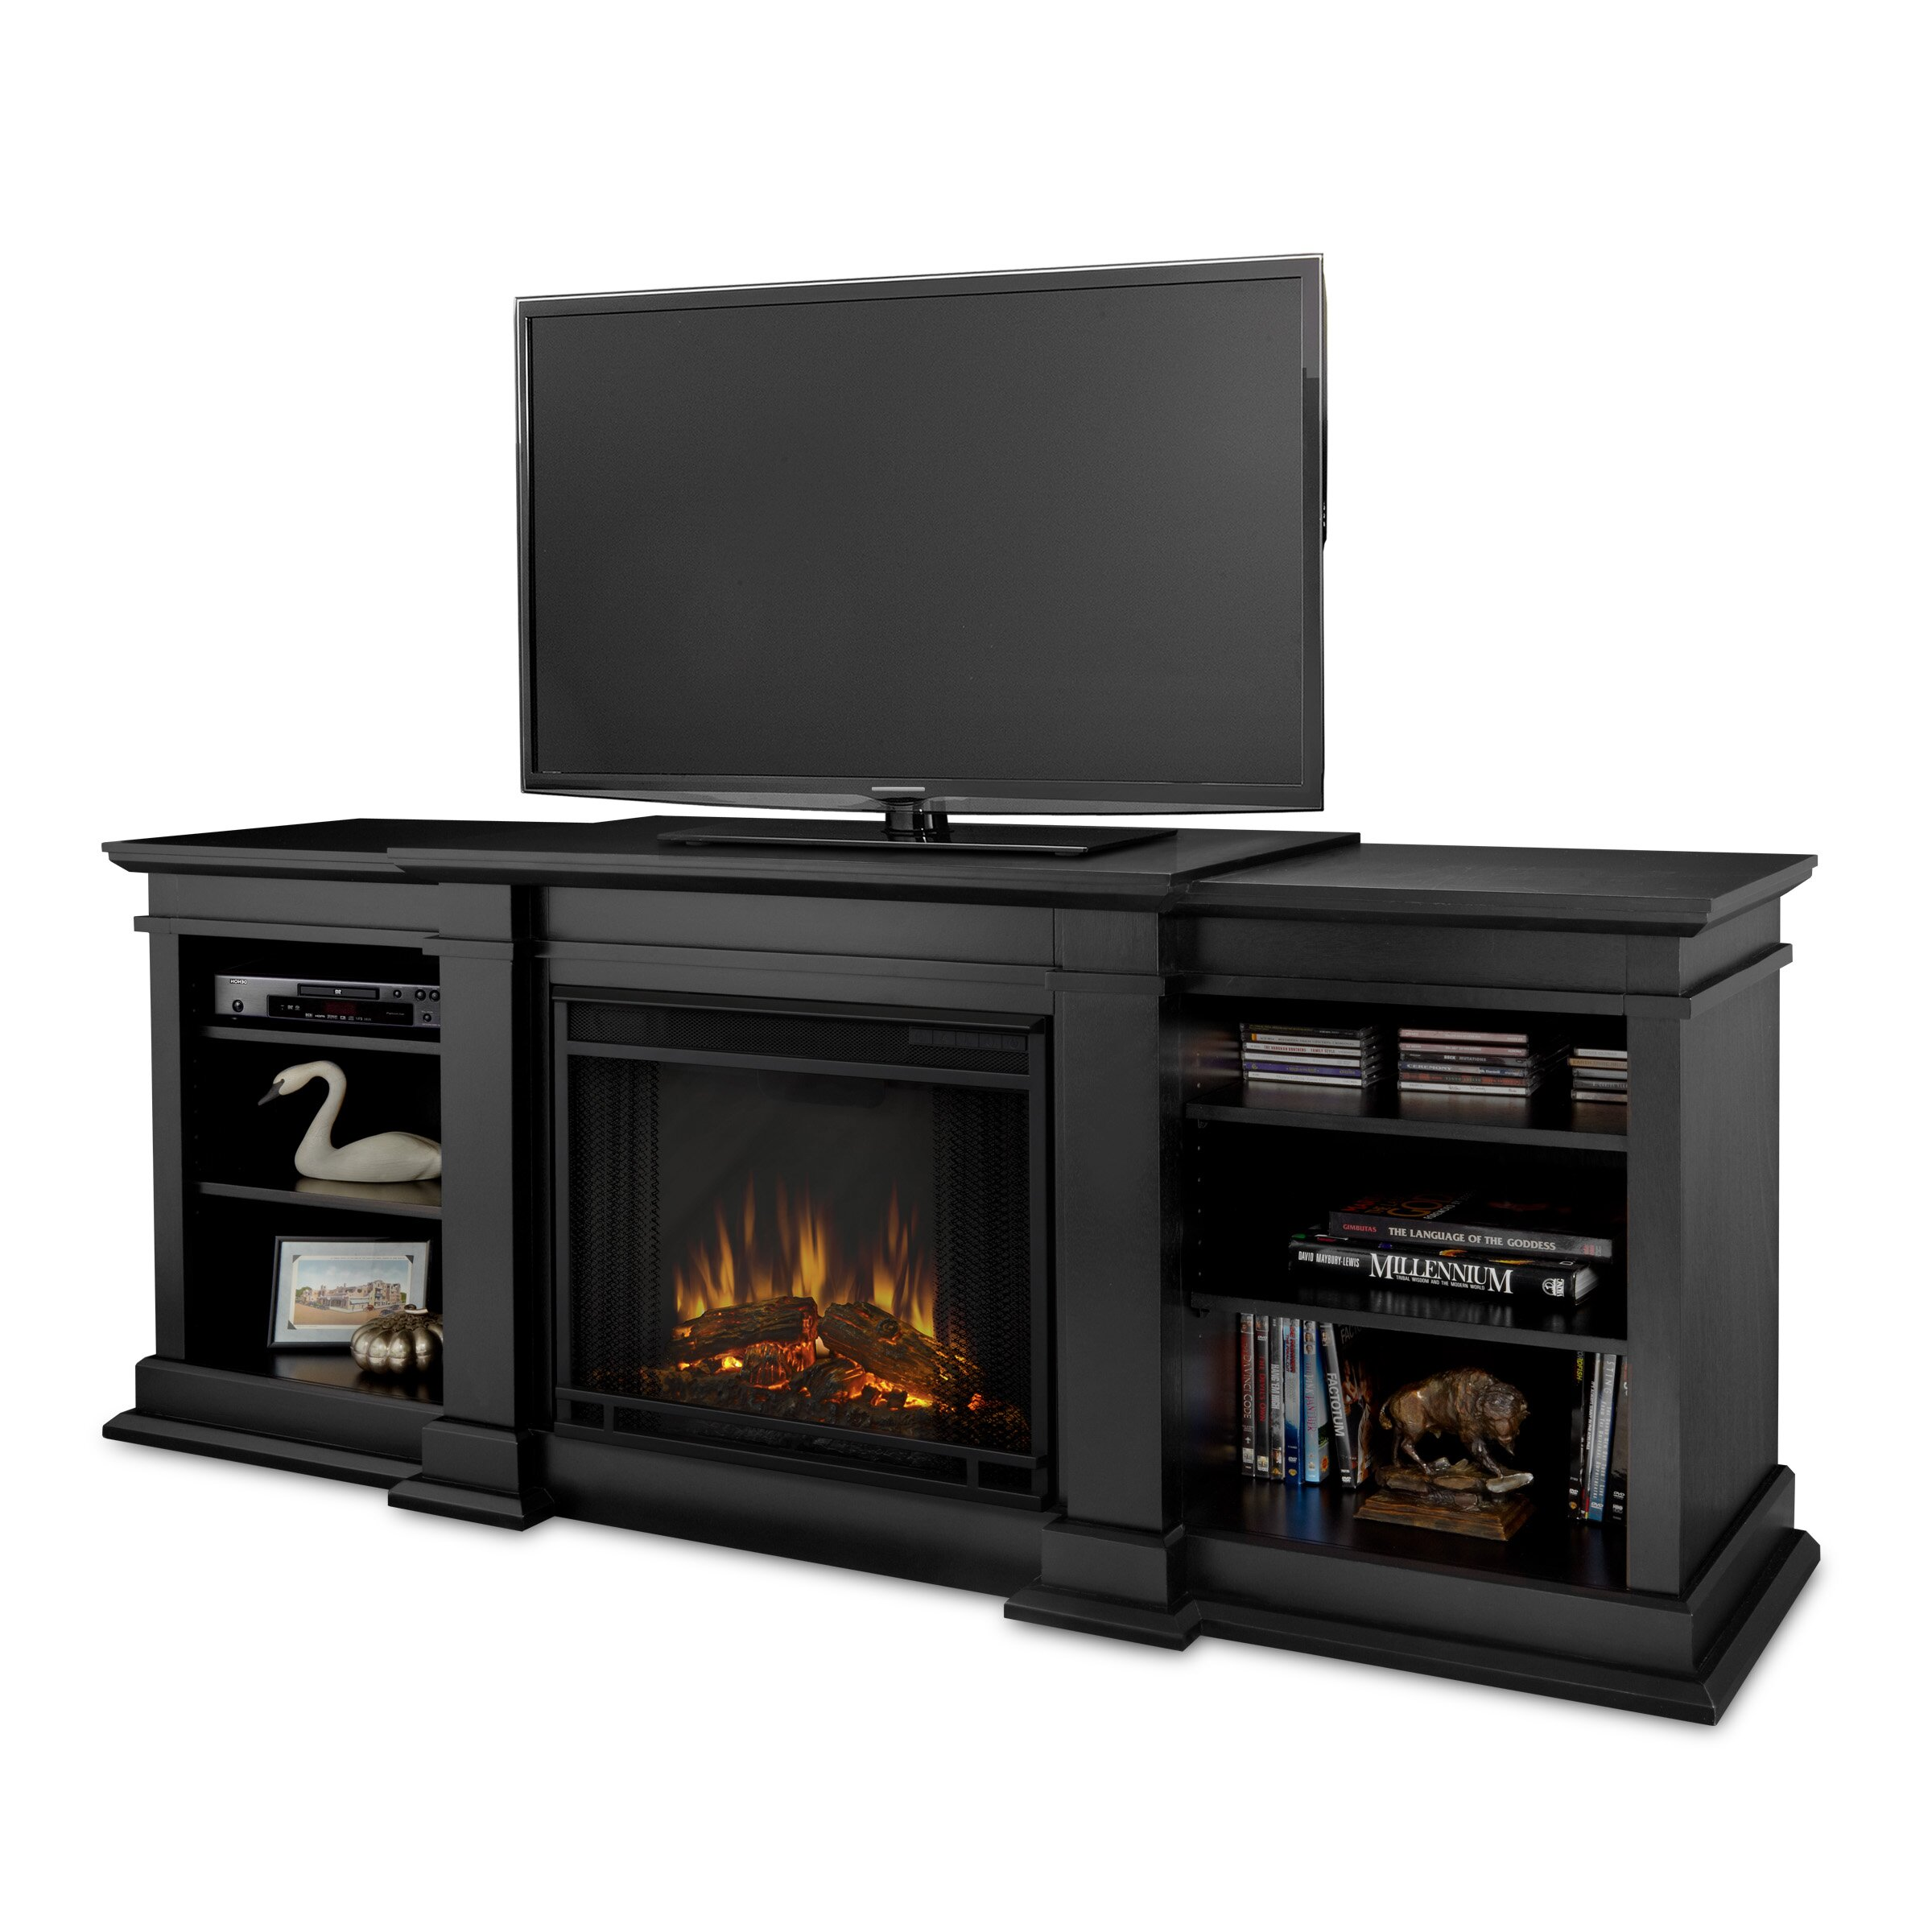 Cheap electric fireplace tv stand - Fresno Tv Stand With Electric Fireplace